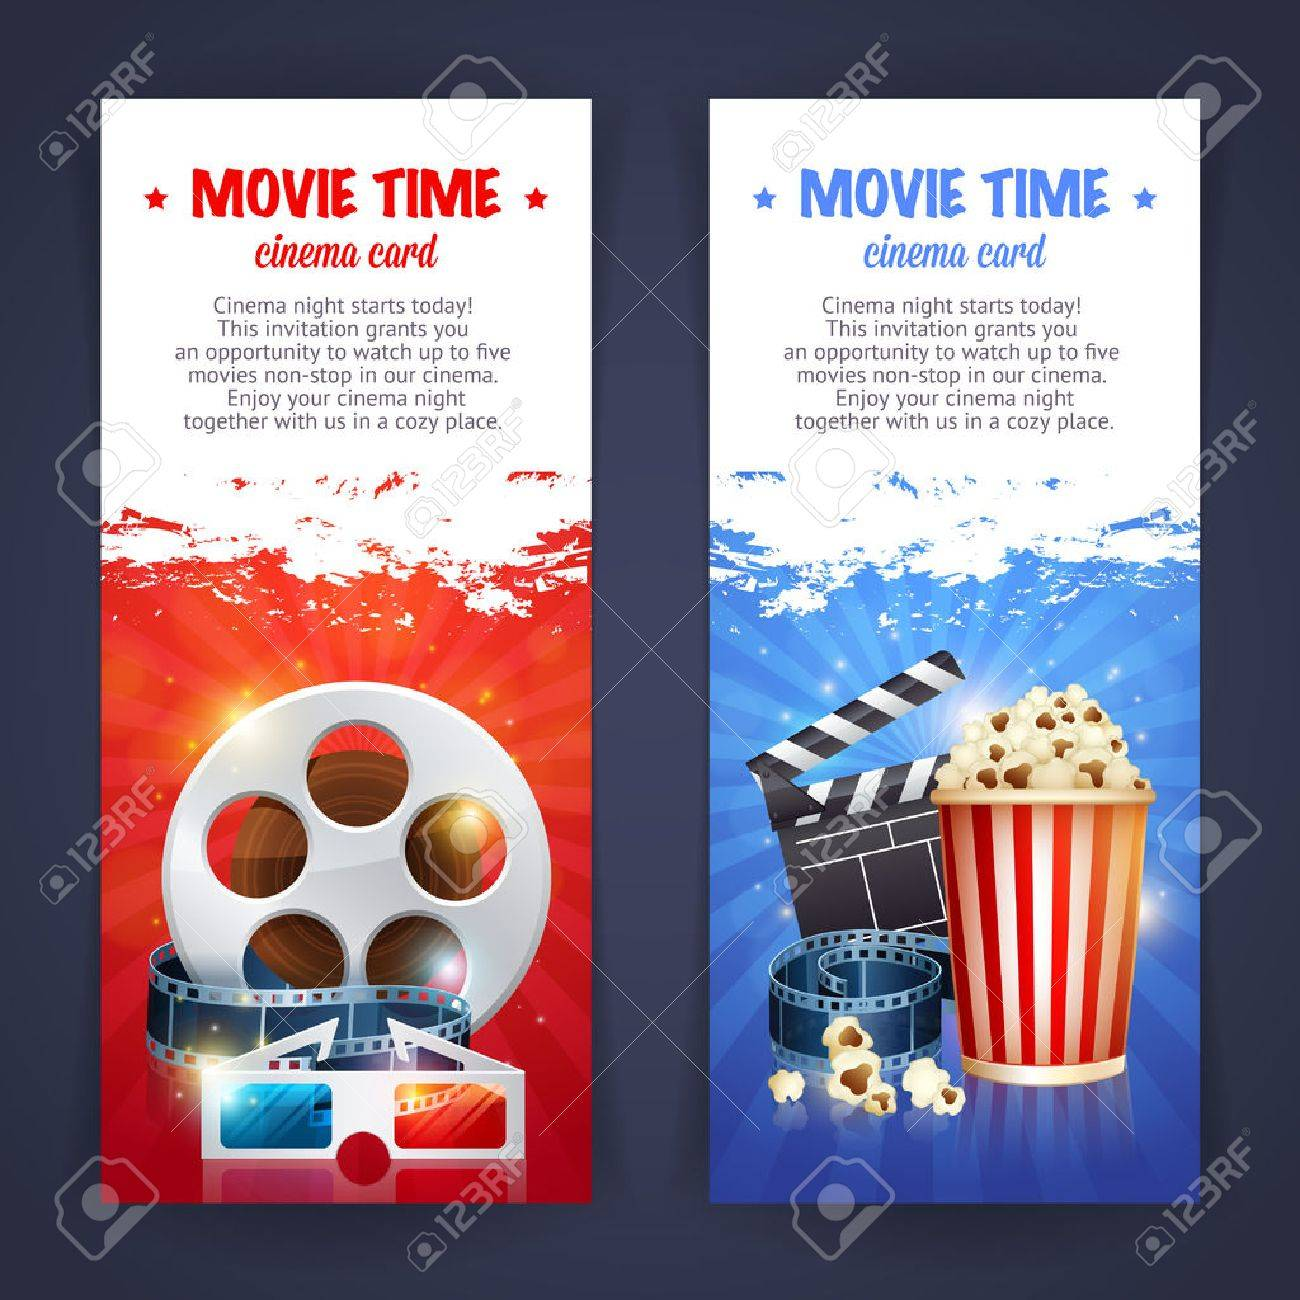 Cute 1099 Template Excel Huge 1099 Template Word Round 2014 Monthly Calendar Templates 2015 Template Calendar Youthful 3d Animator Resume Templates Green3d Character Modeler Resume Realistic Cinema Movie Poster Template With Film Reel, Clapper ..